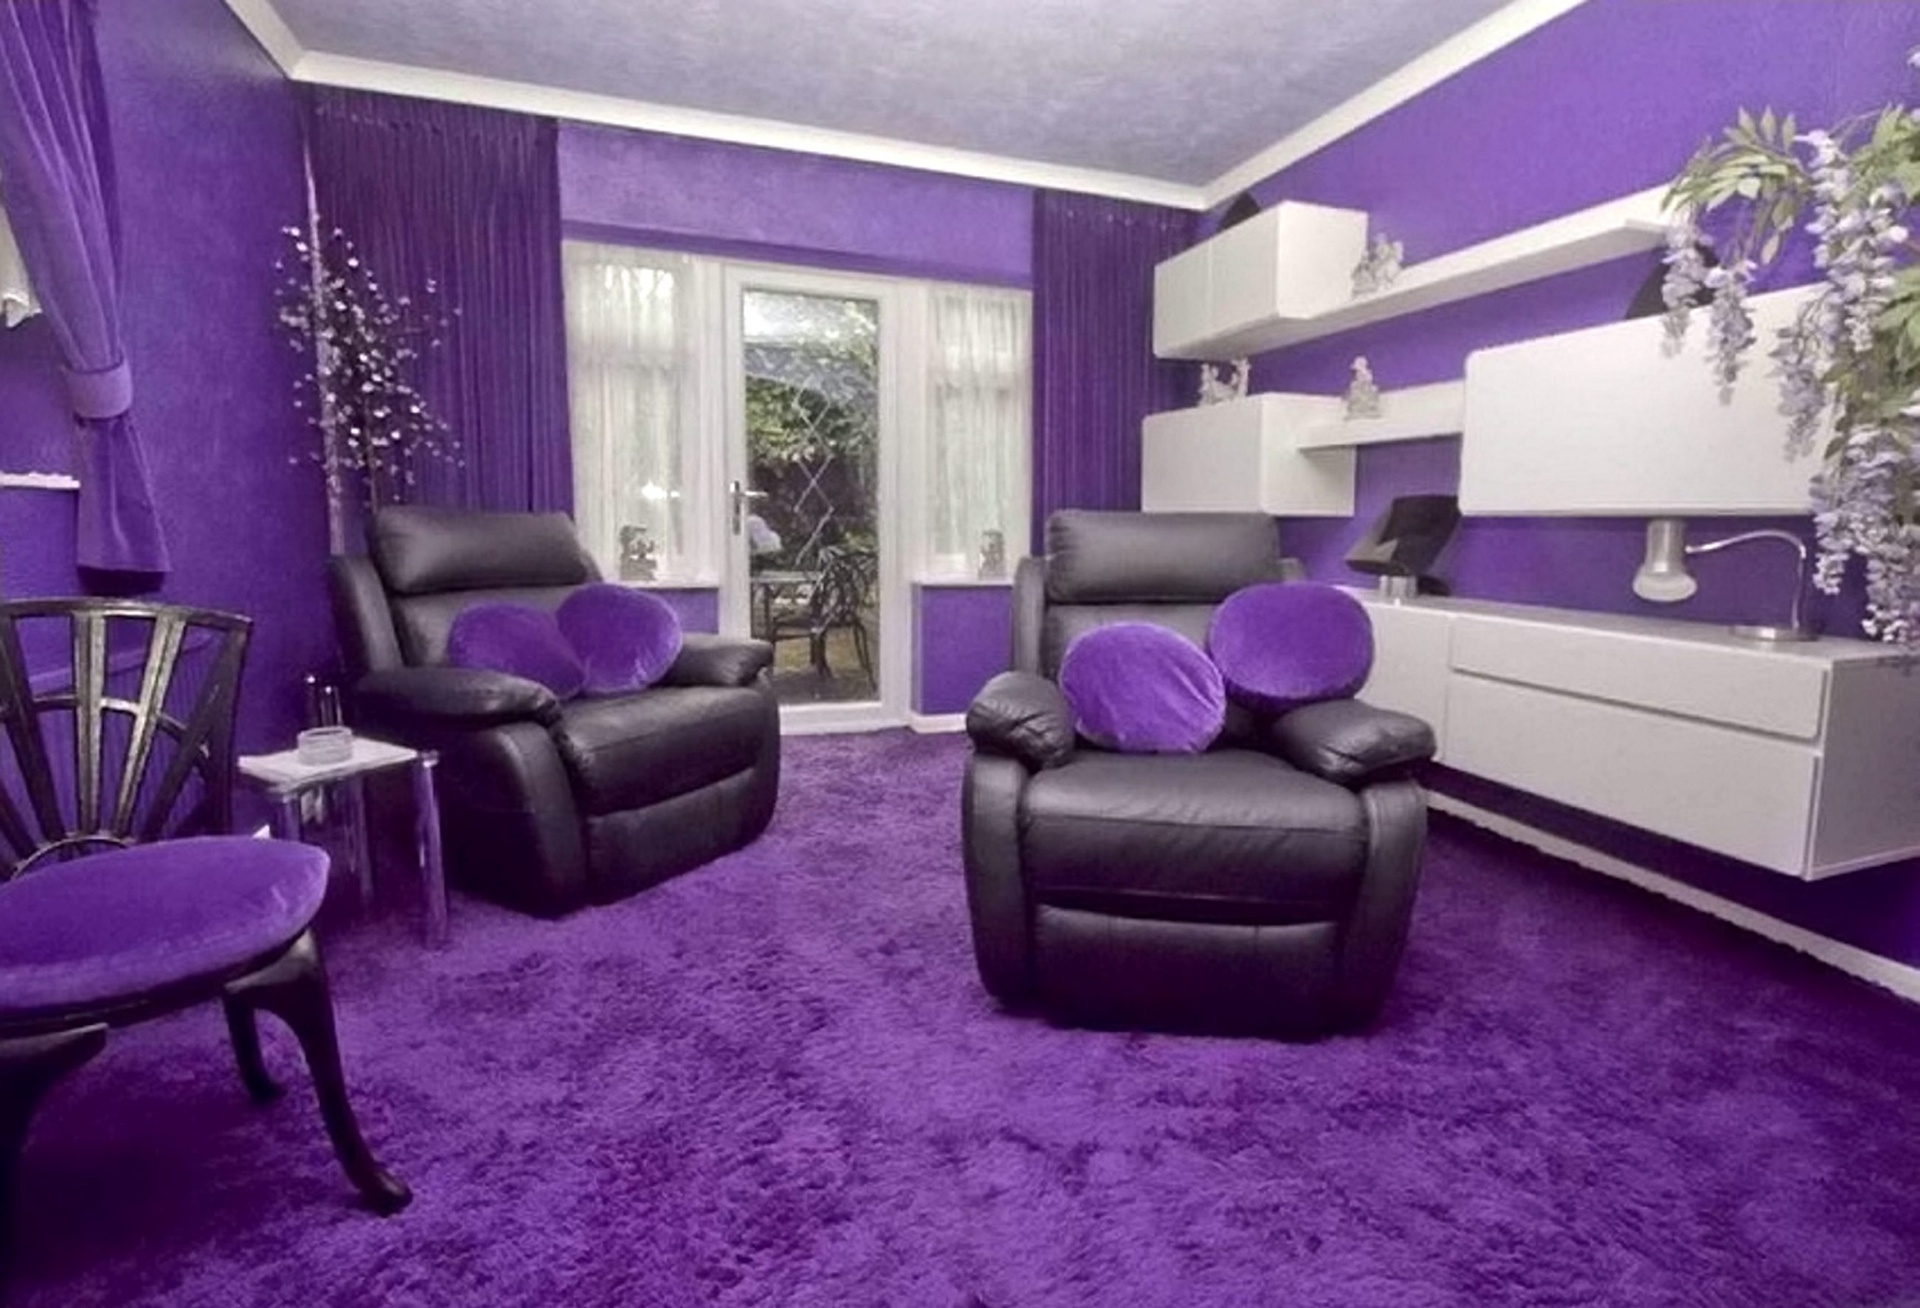 7) The Purple House In Hillingdon, Middlesex